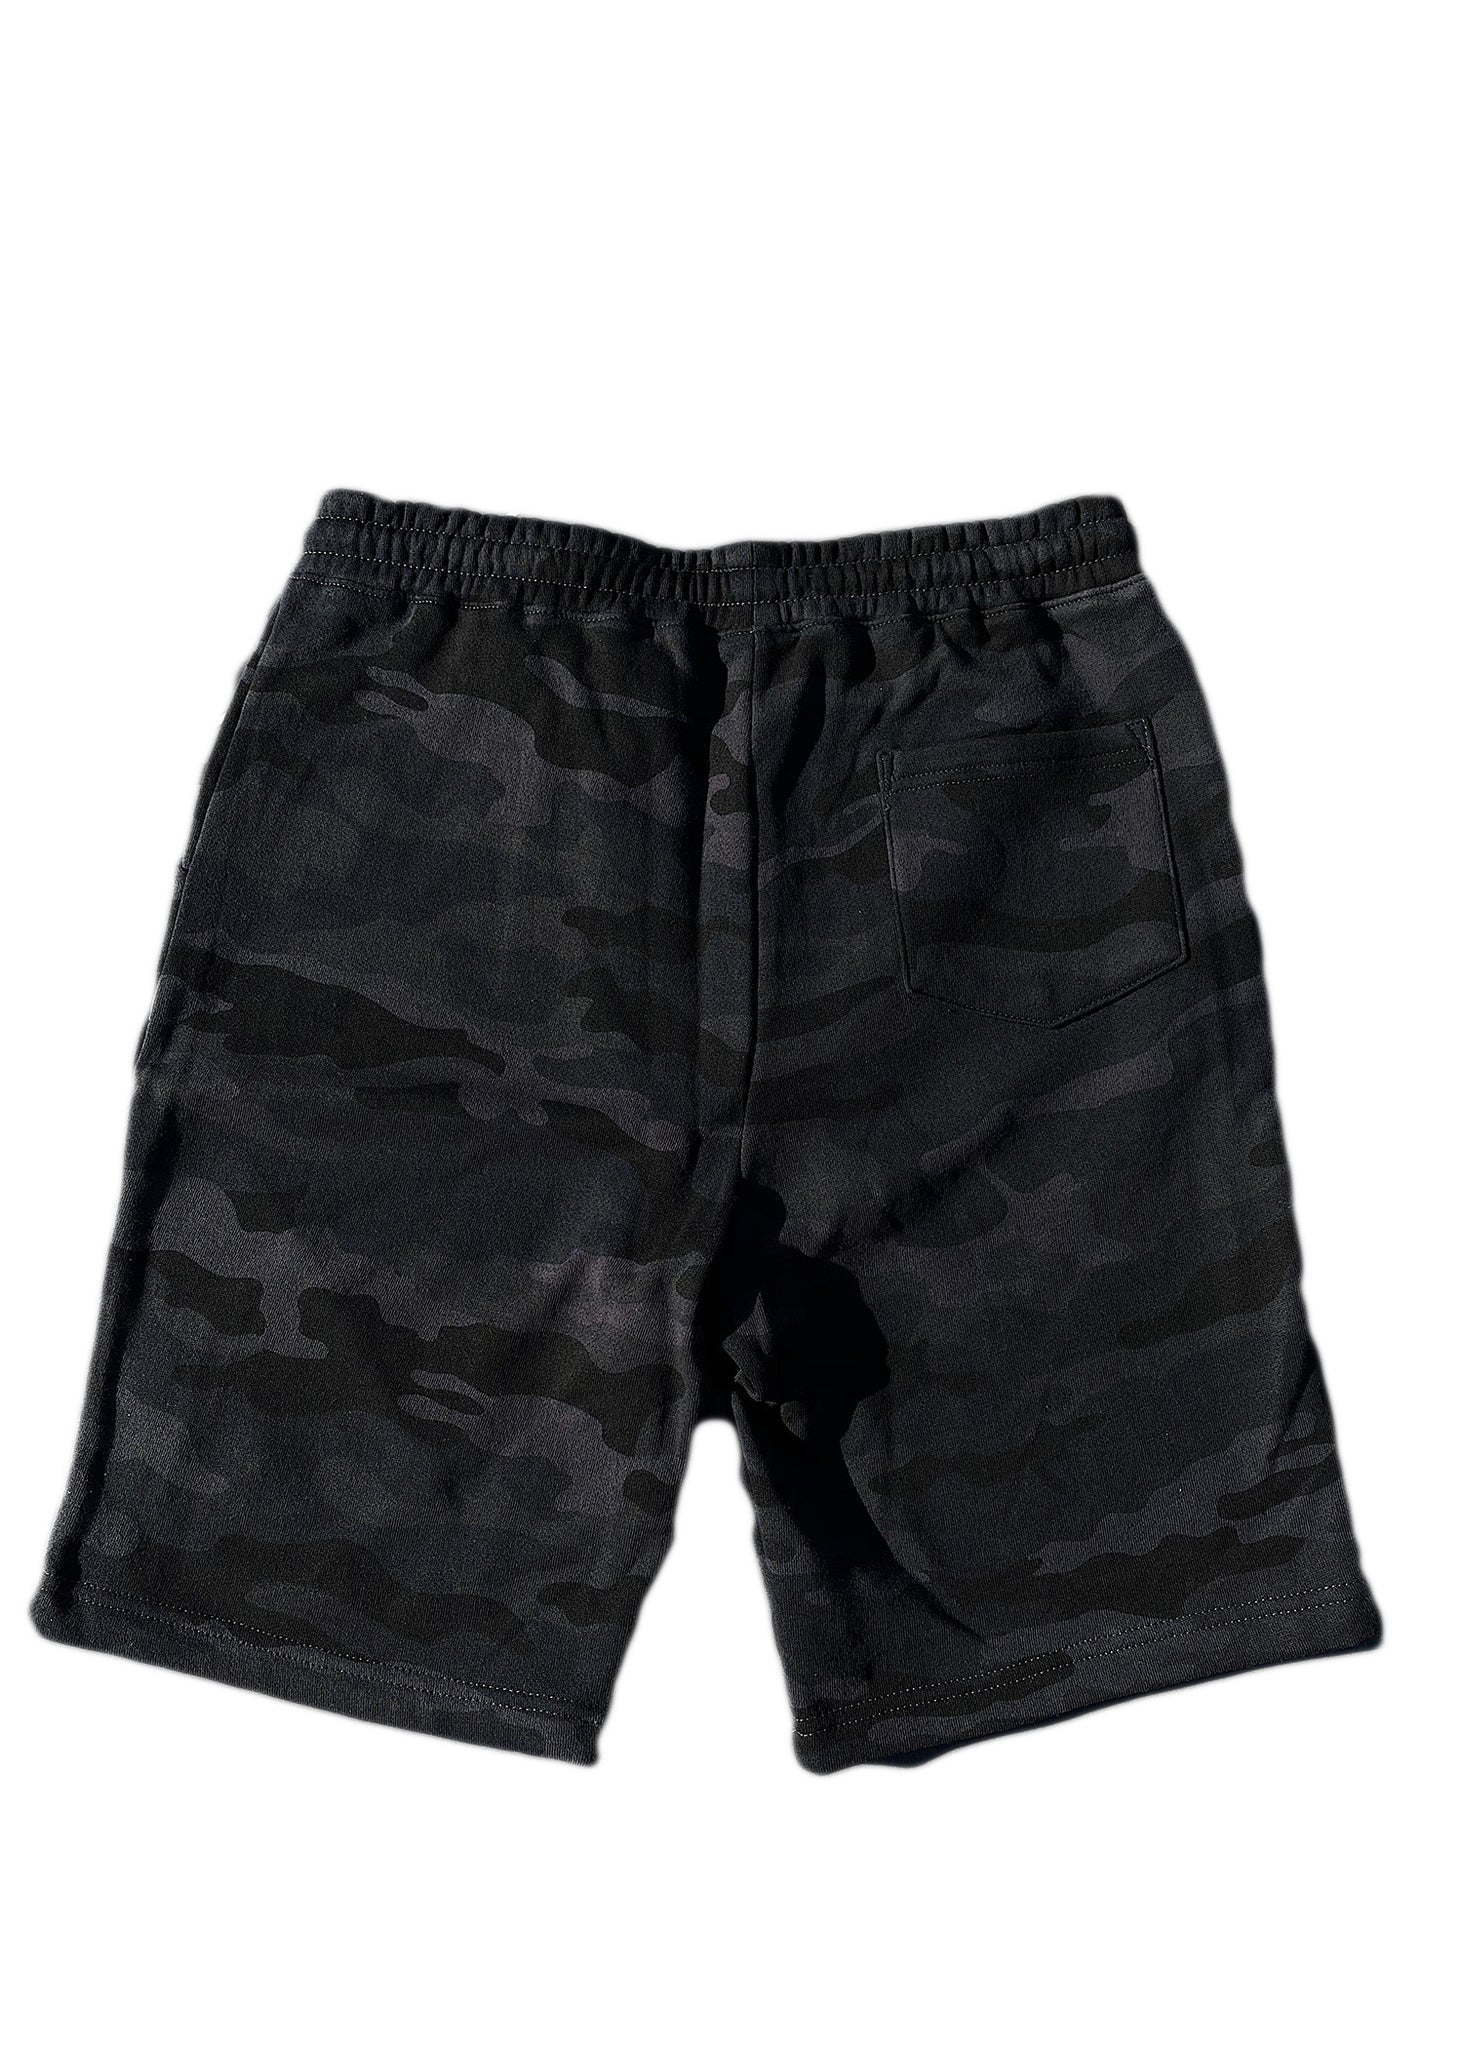 Black Camo Embossed Script Sweatshort